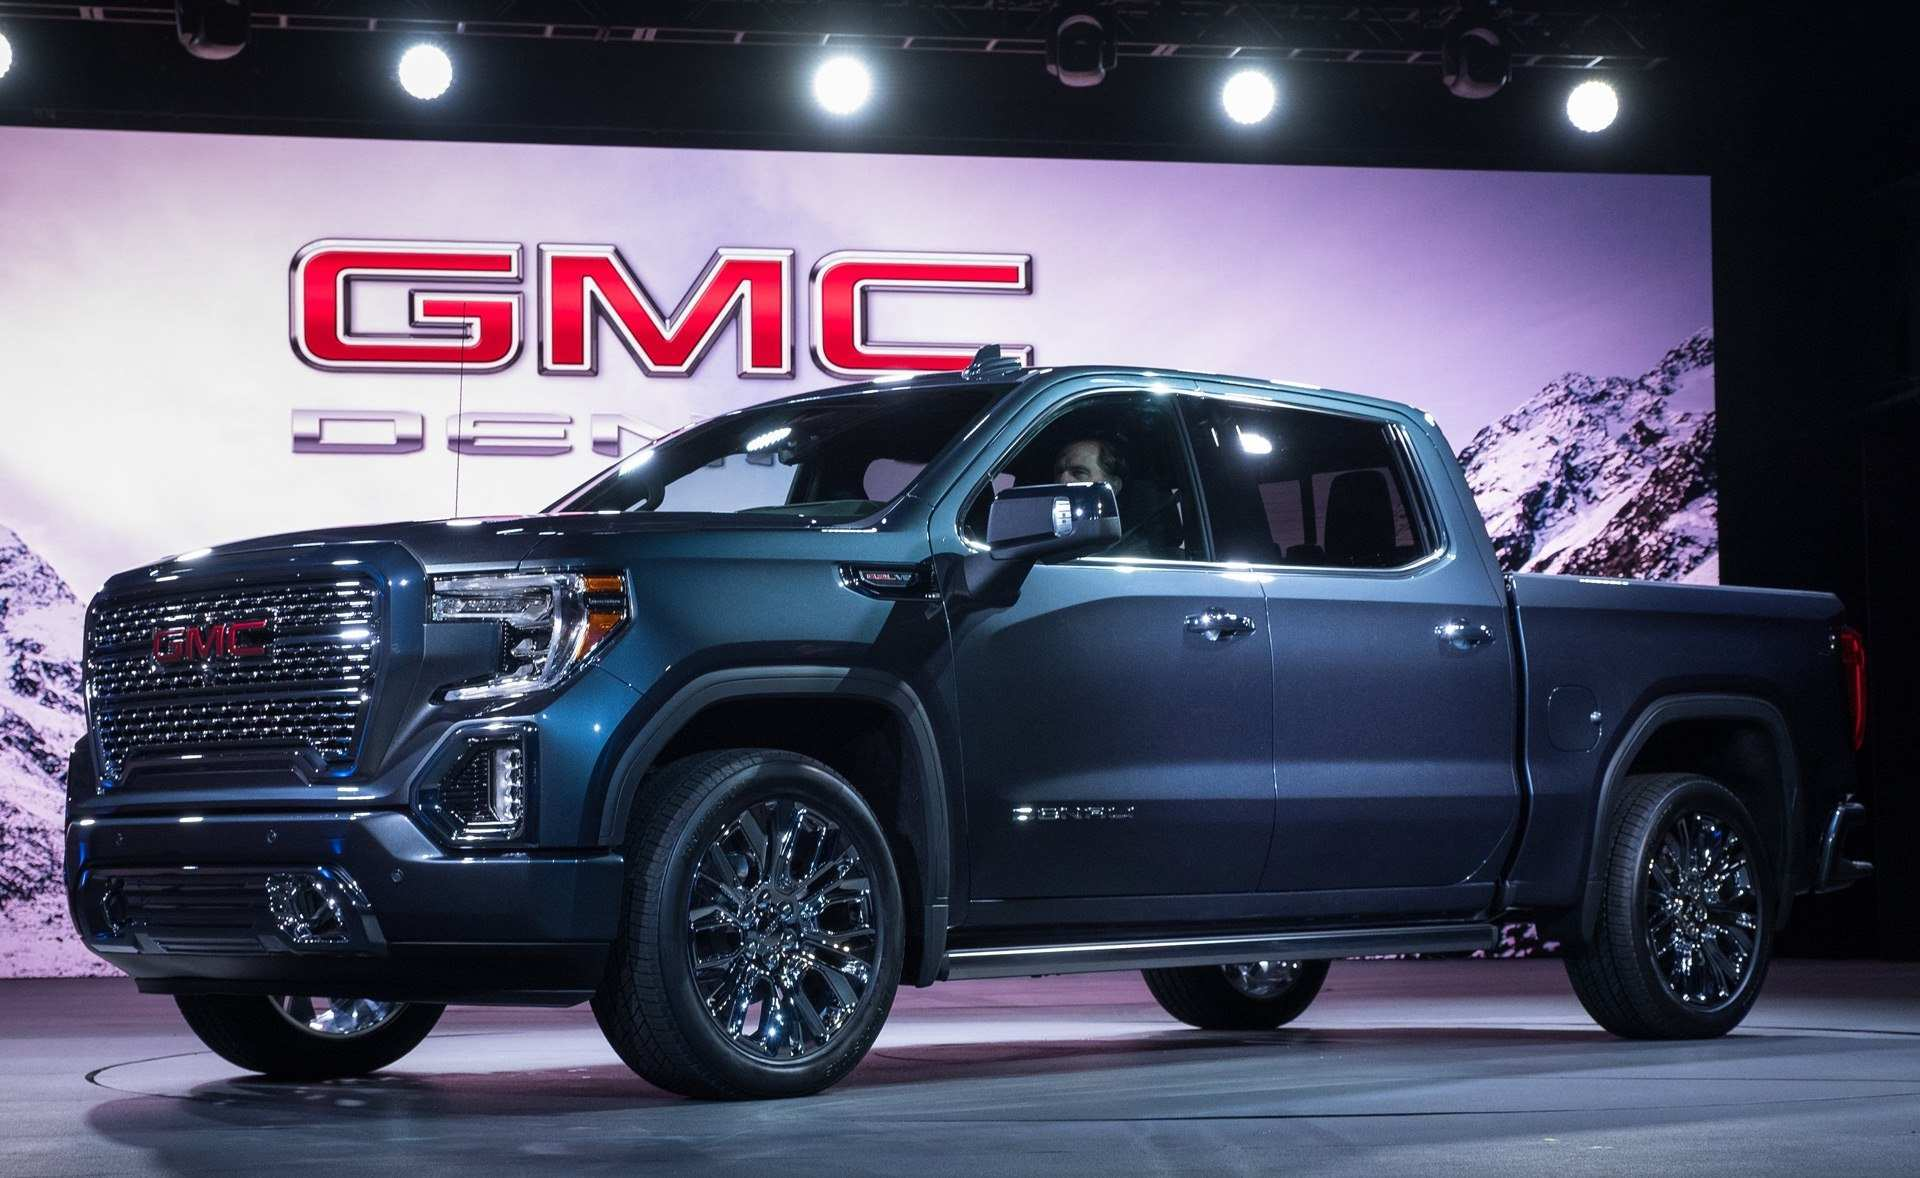 43 Concept of Gmc Sierra 2020 Price Configurations by Gmc Sierra 2020 Price